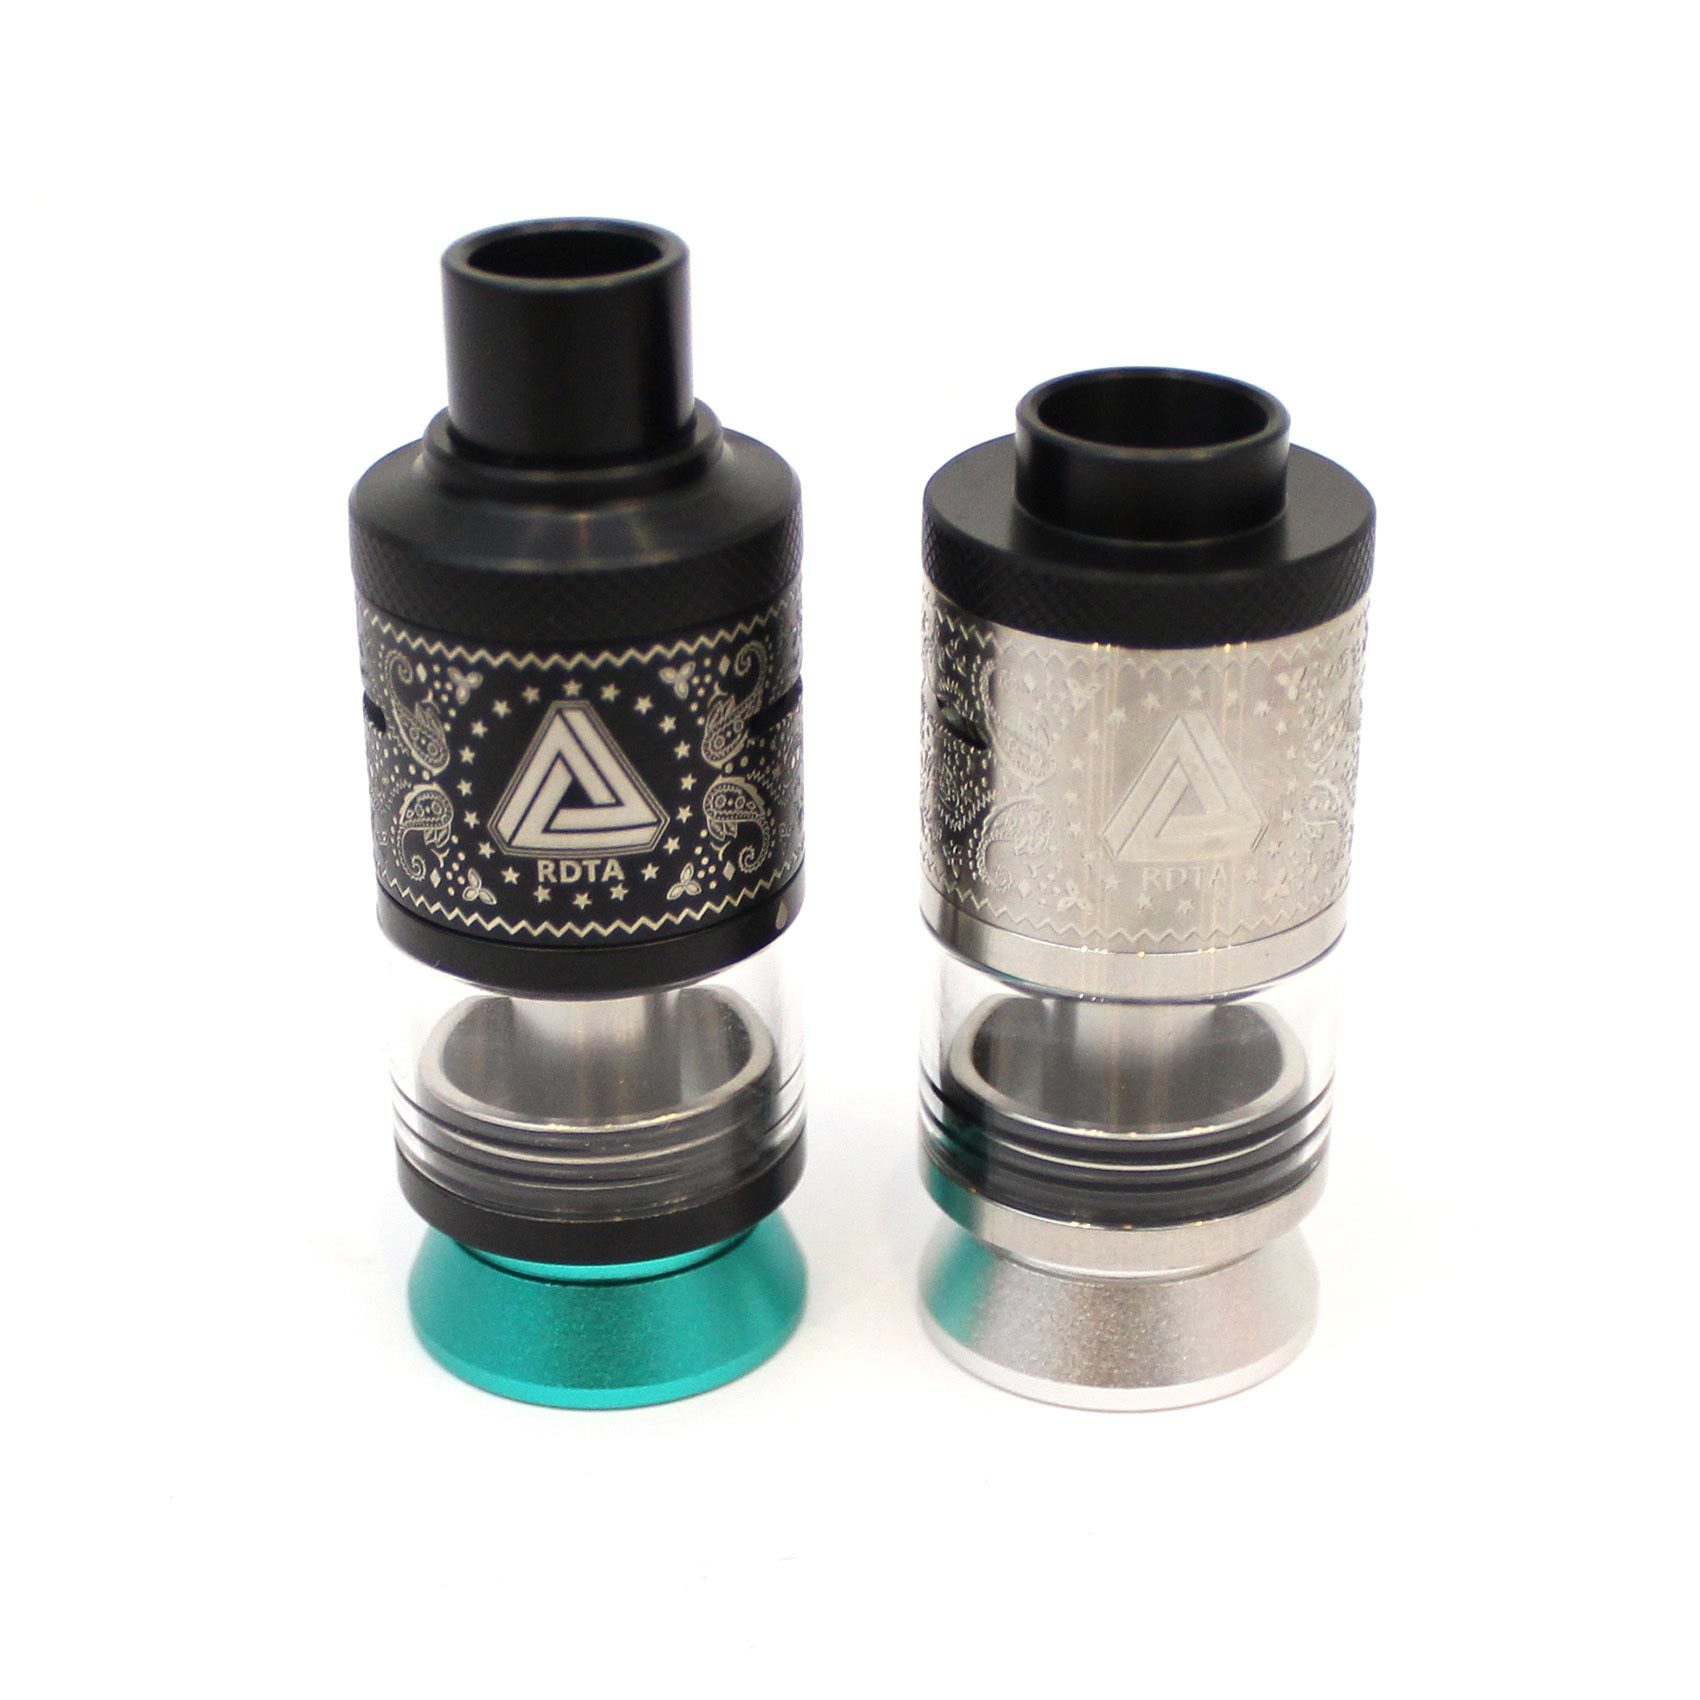 Дрипка Limitless Plus RDTA (Authentic)